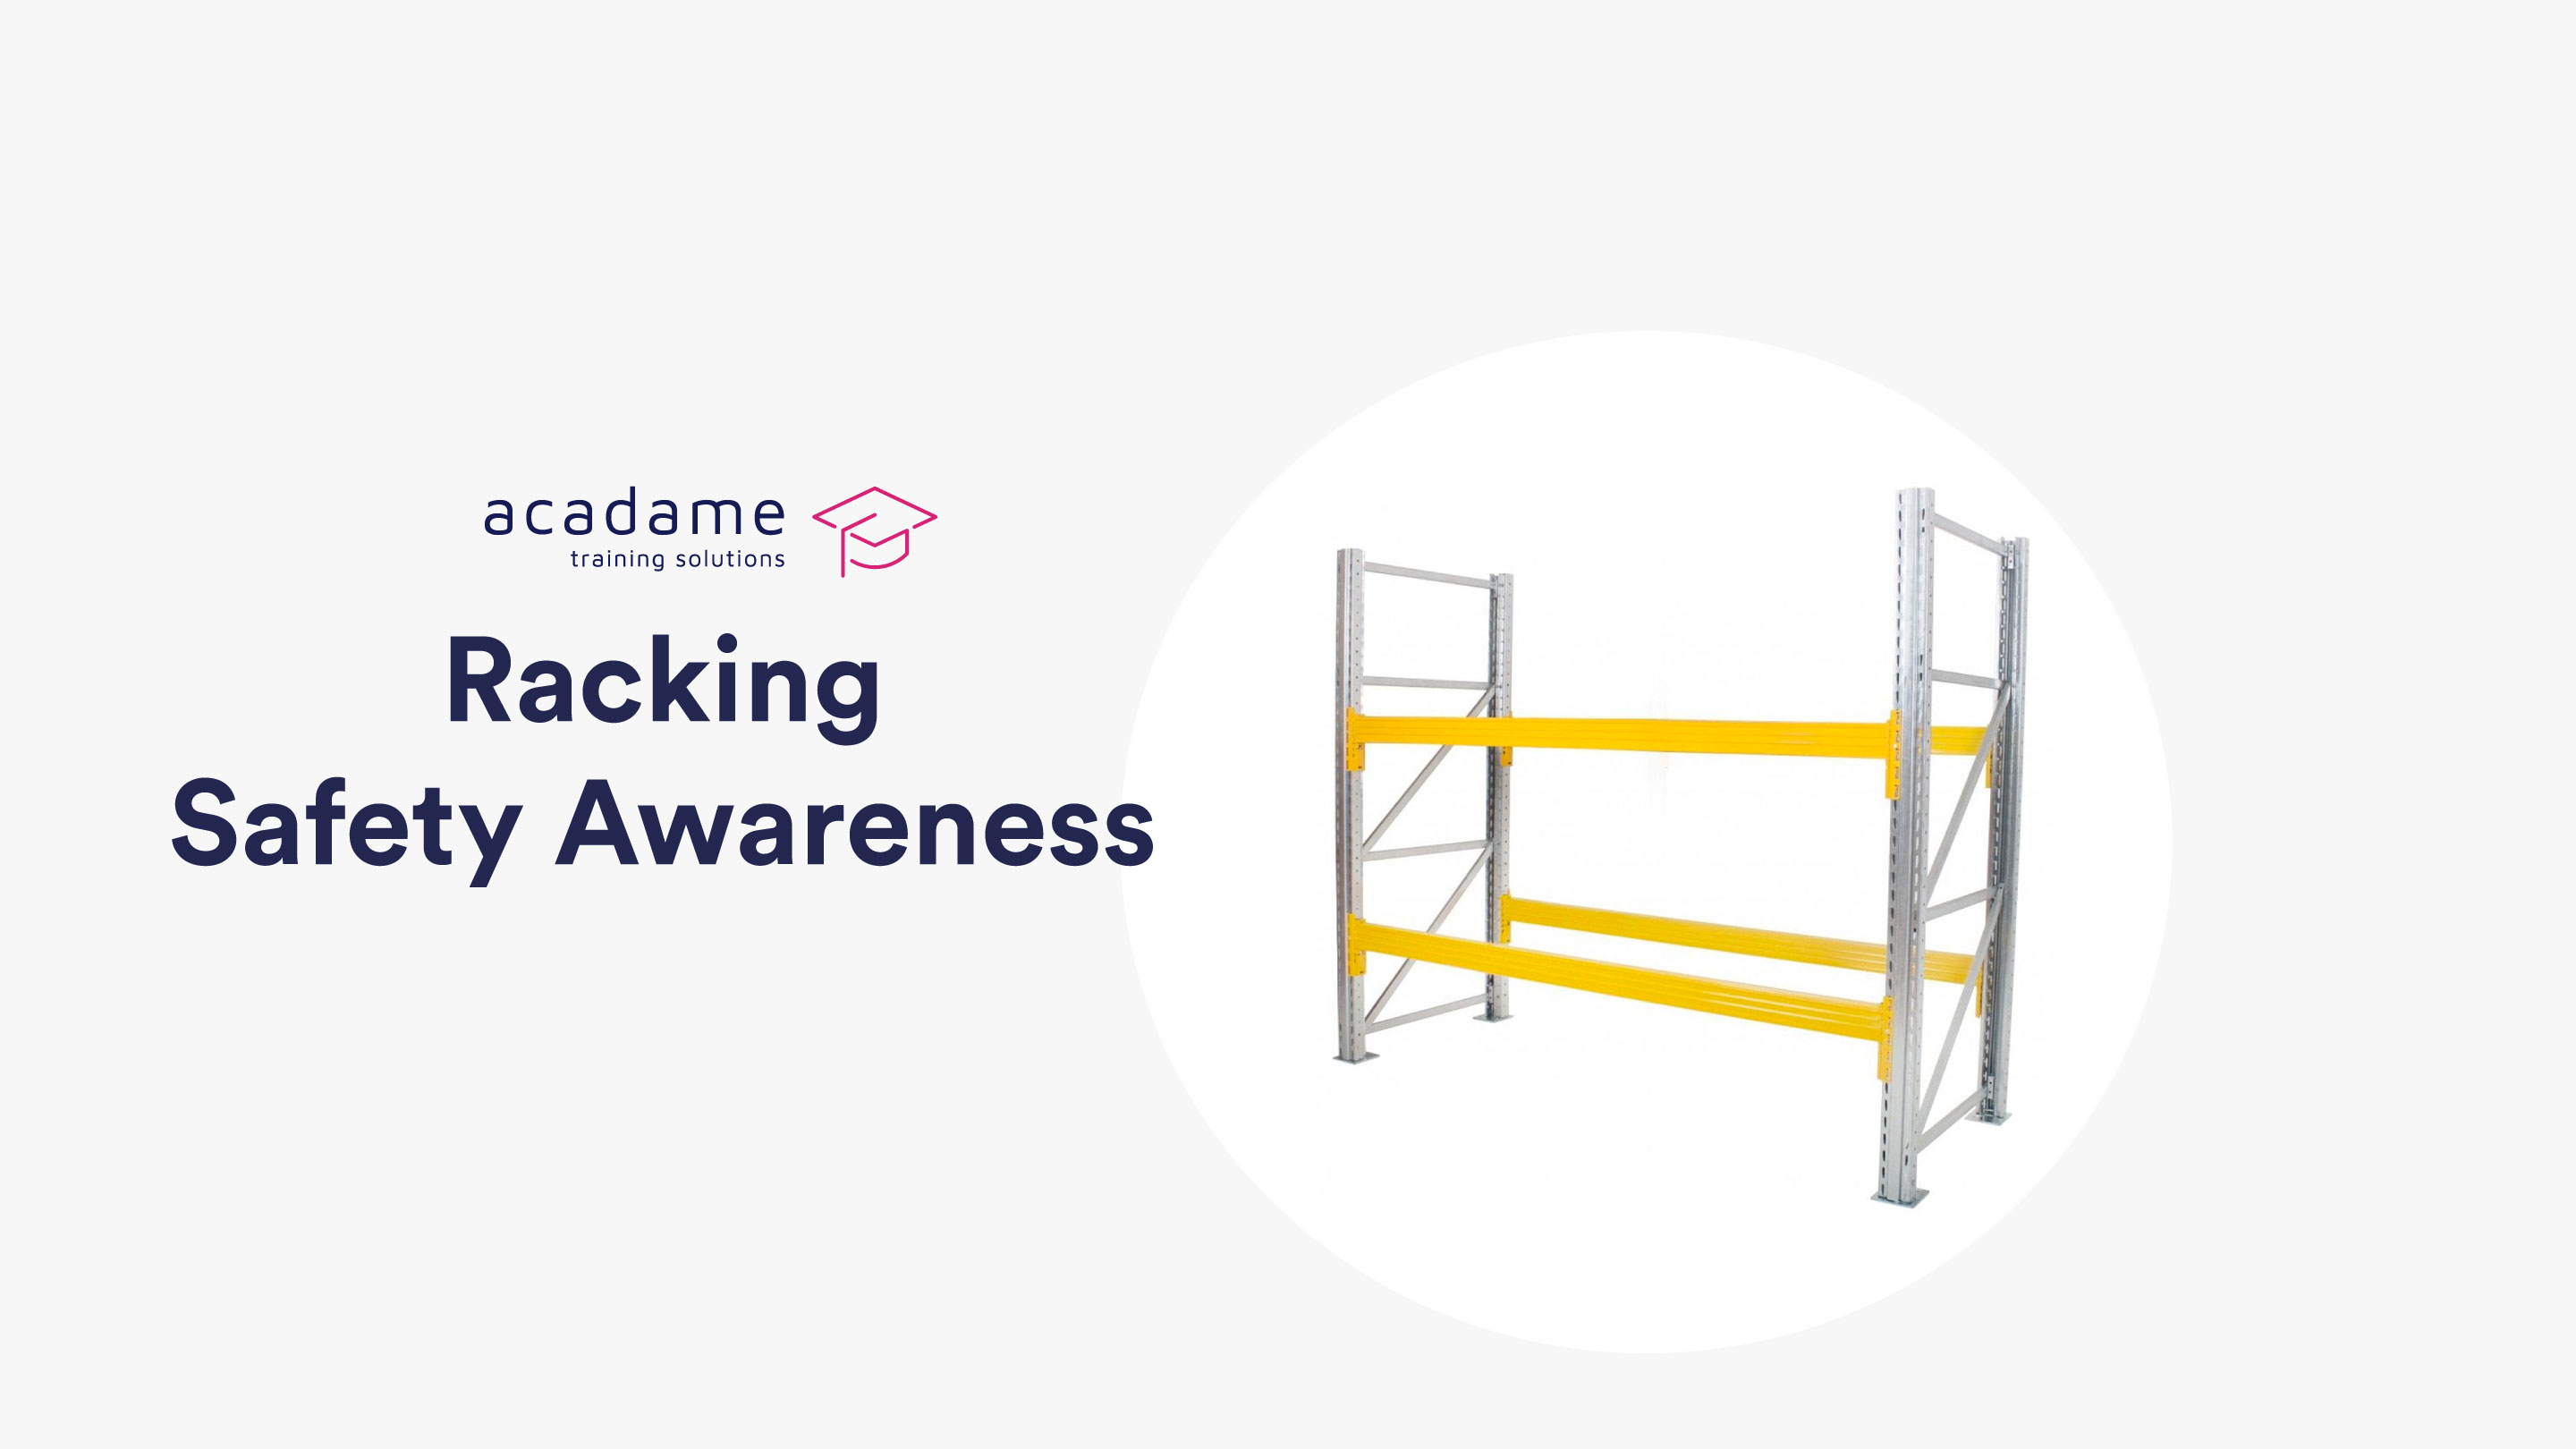 racking_safety_awareness_training_course_in_stoke_on_trent.jpg